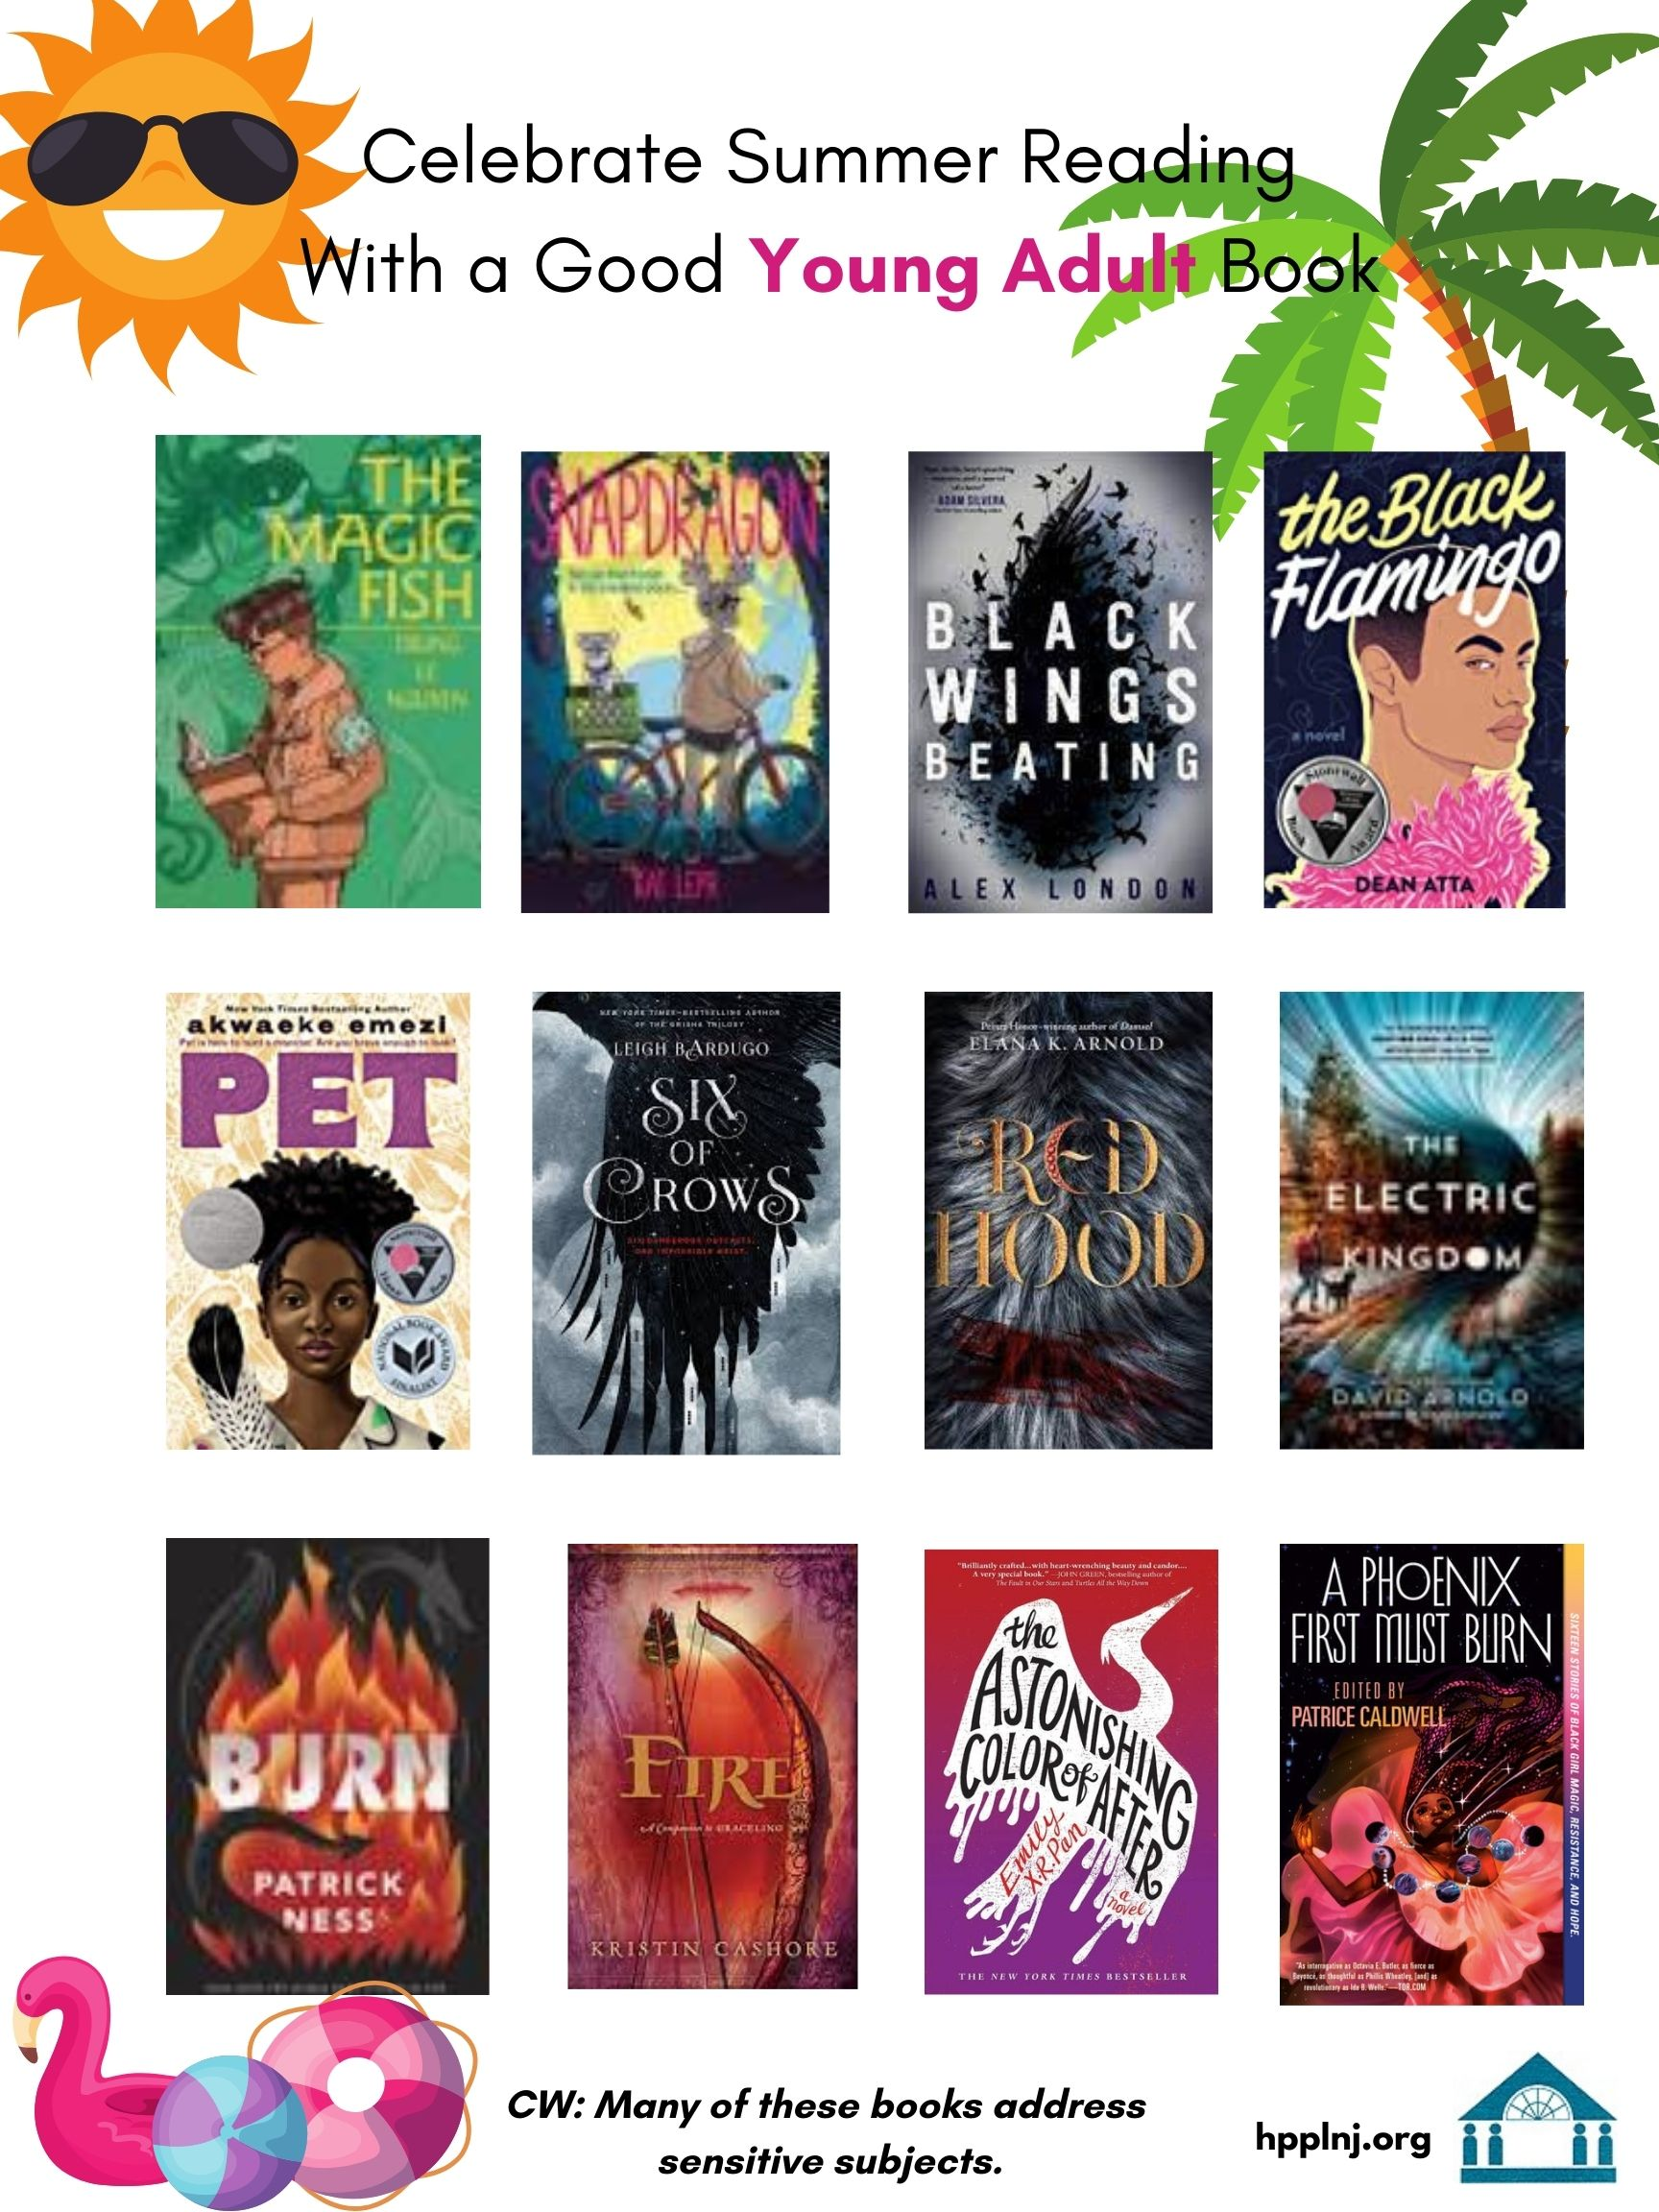 Celebrate Summer Reading with a Good Young Adult Book: The Magic Fish, Snapdragon, Black Wings Beating, The Black Flamingo, Pet, Six of Crows, Red Hood, The Electric Kingdom, Burn, Fire, The Astonishing Color of After, A Phoenix First Must Burn. CW: Many of these book address sensitive subjects.